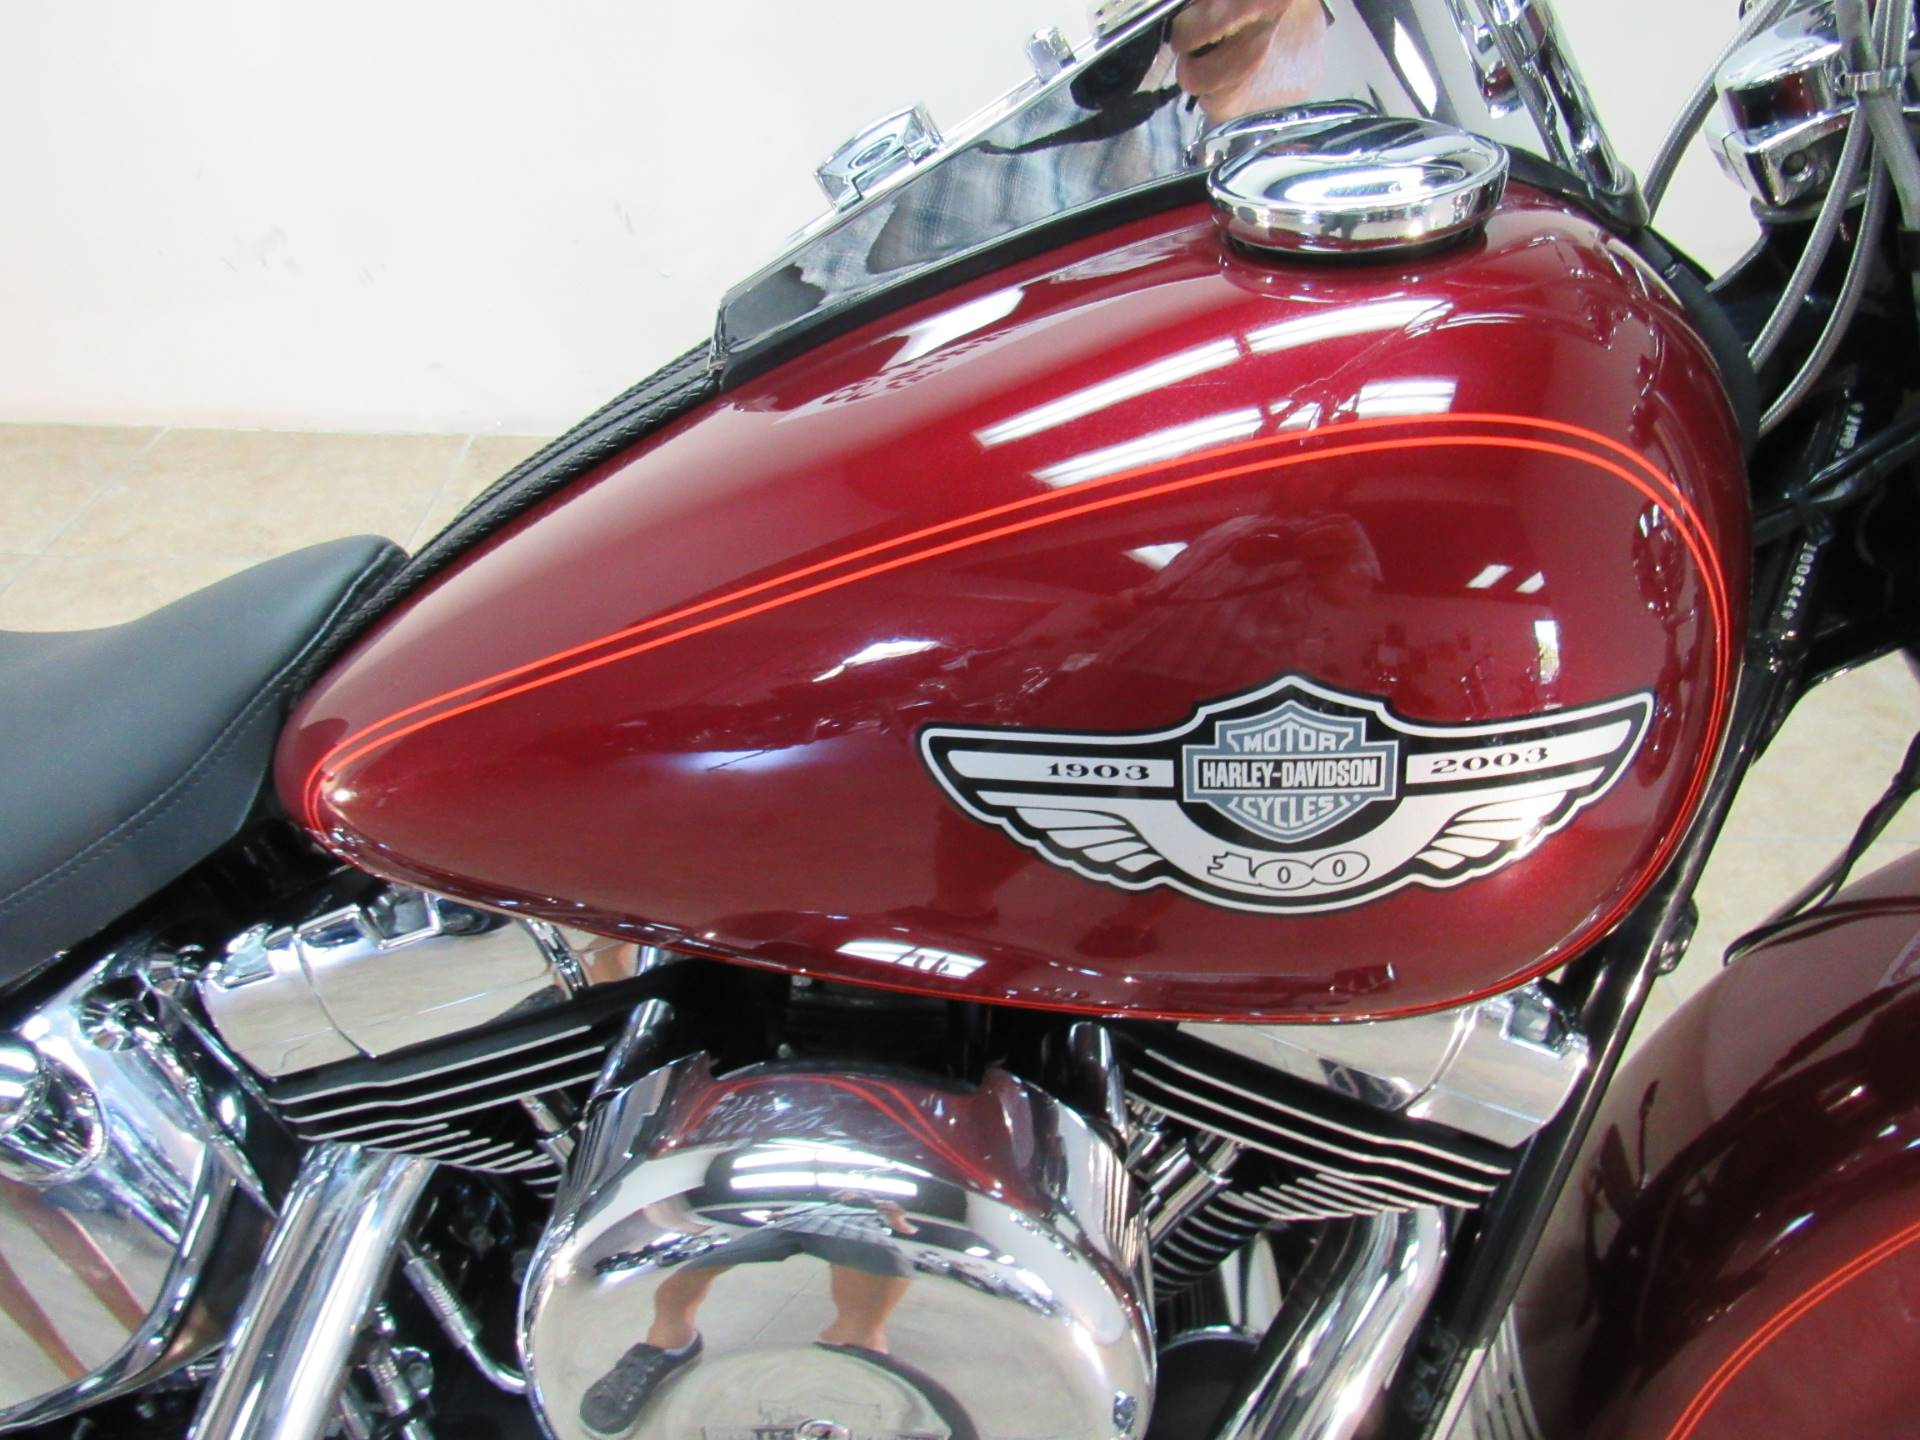 2003 Harley-Davidson FLSTC/FLSTCI Heritage Softail® Classic in Temecula, California - Photo 11